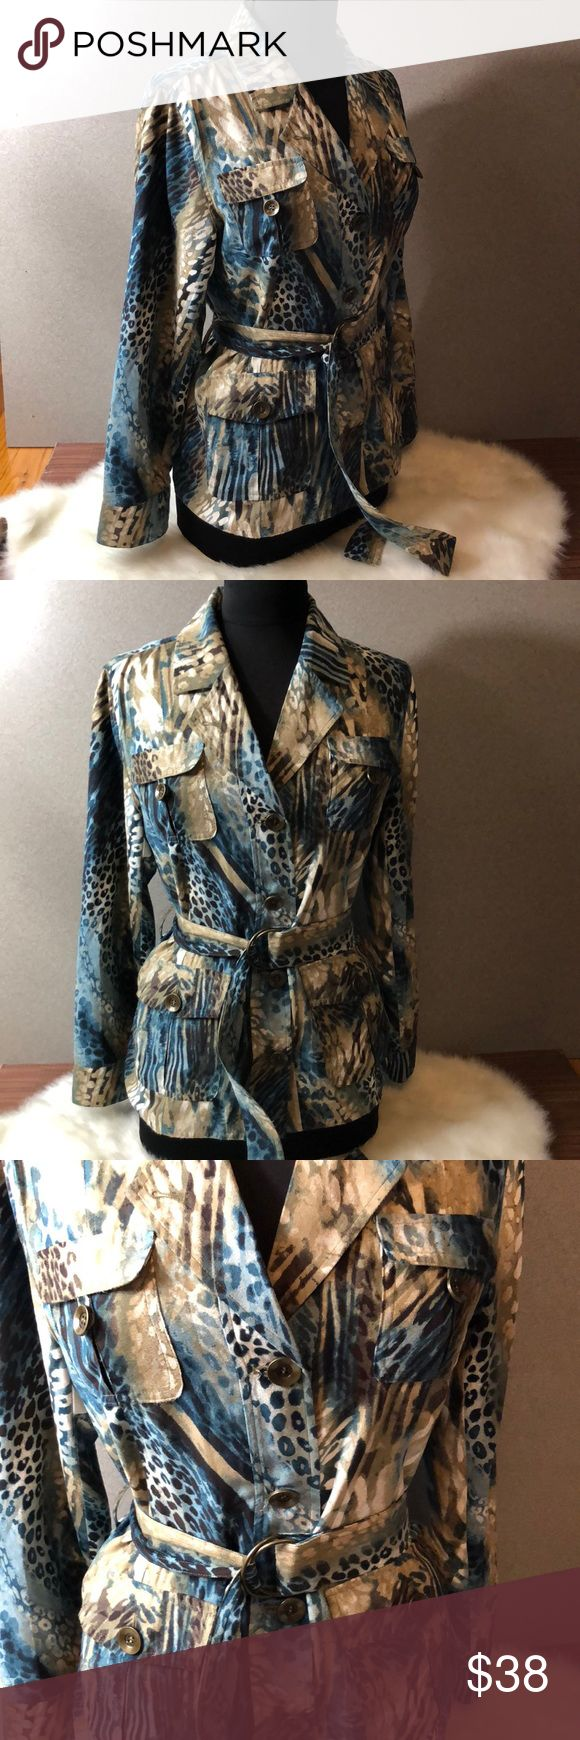 """CHICO'S Suede-like Animal Print Belted Jacket Excellent used condition. Suede-like textured unlined belted jacket with multi-color animal print by Chico's. RN 79984 100% polyester and machine washable.  Chico's size 1 = traditional US size 8 (see last photo from Chico's website)  Armpit to armpit 20""""  Length 26""""  No trades.  We are a smoke and pet-free home. Chico's Jackets & Coats"""